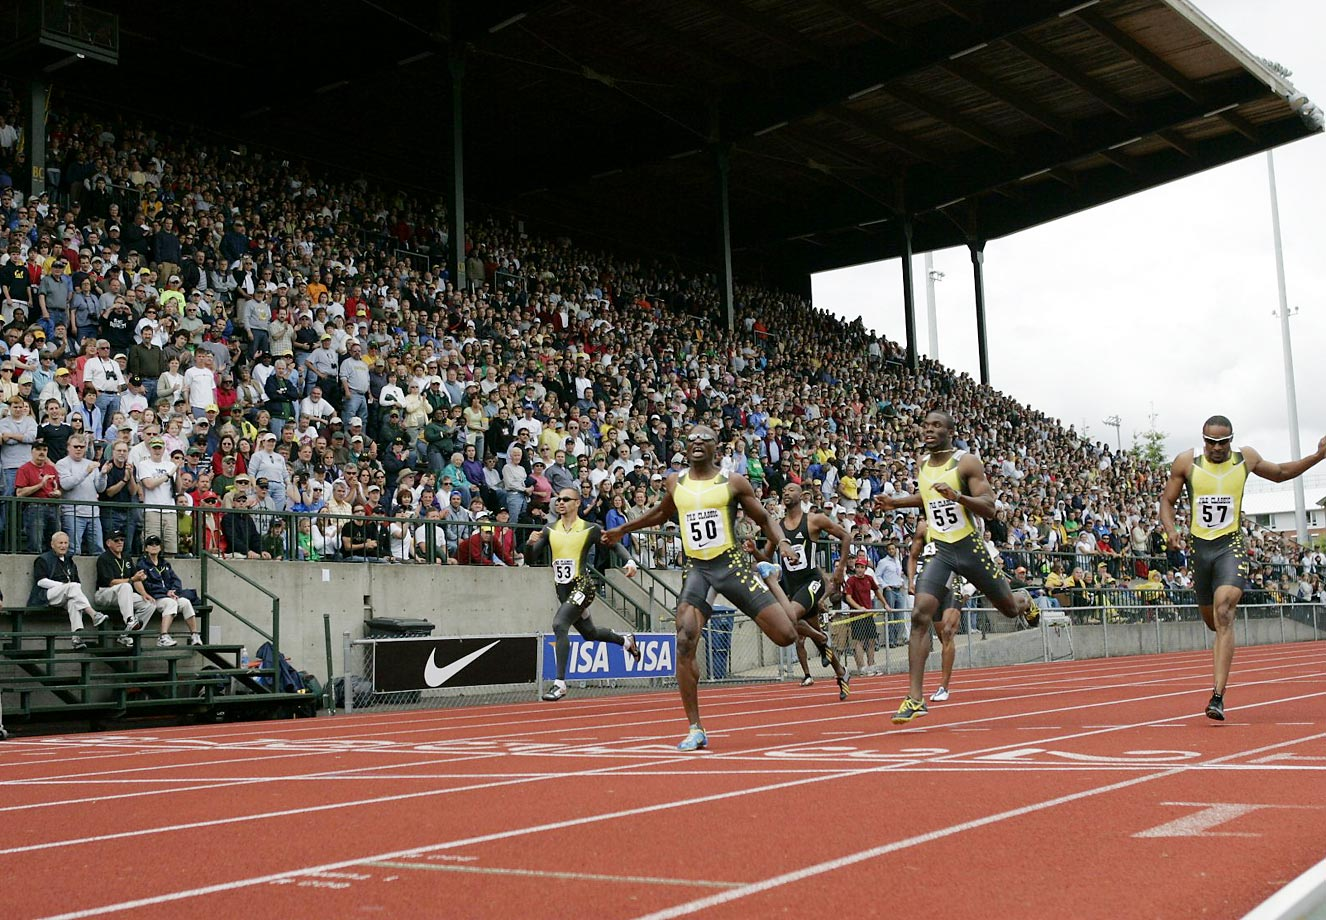 Competitors at the 2007 Prefontaine Classic.